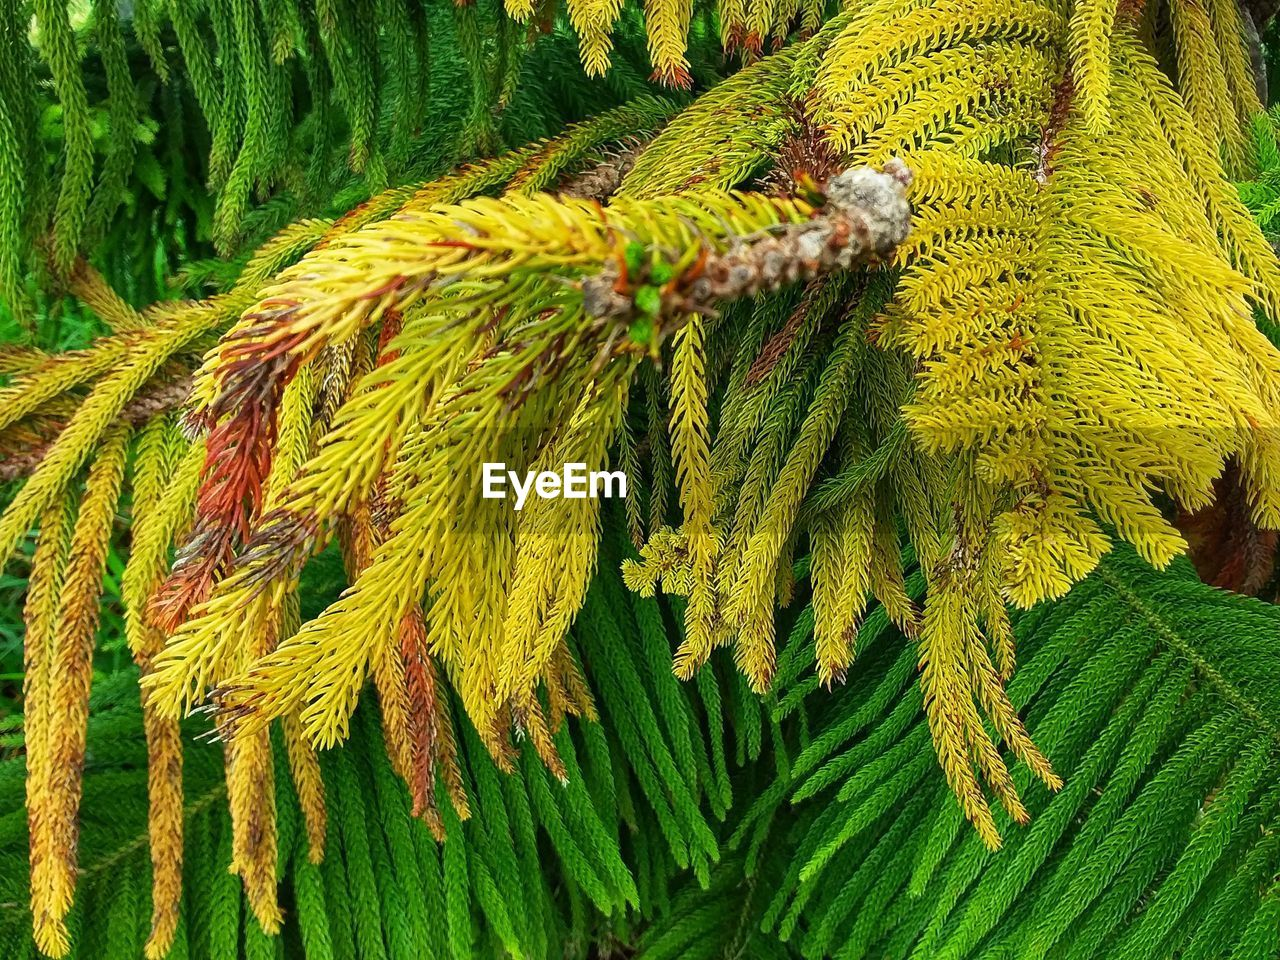 green color, close-up, growth, plant, no people, day, beauty in nature, nature, leaf, plant part, yellow, high angle view, outdoors, rope, pattern, freshness, focus on foreground, full frame, tree, fern